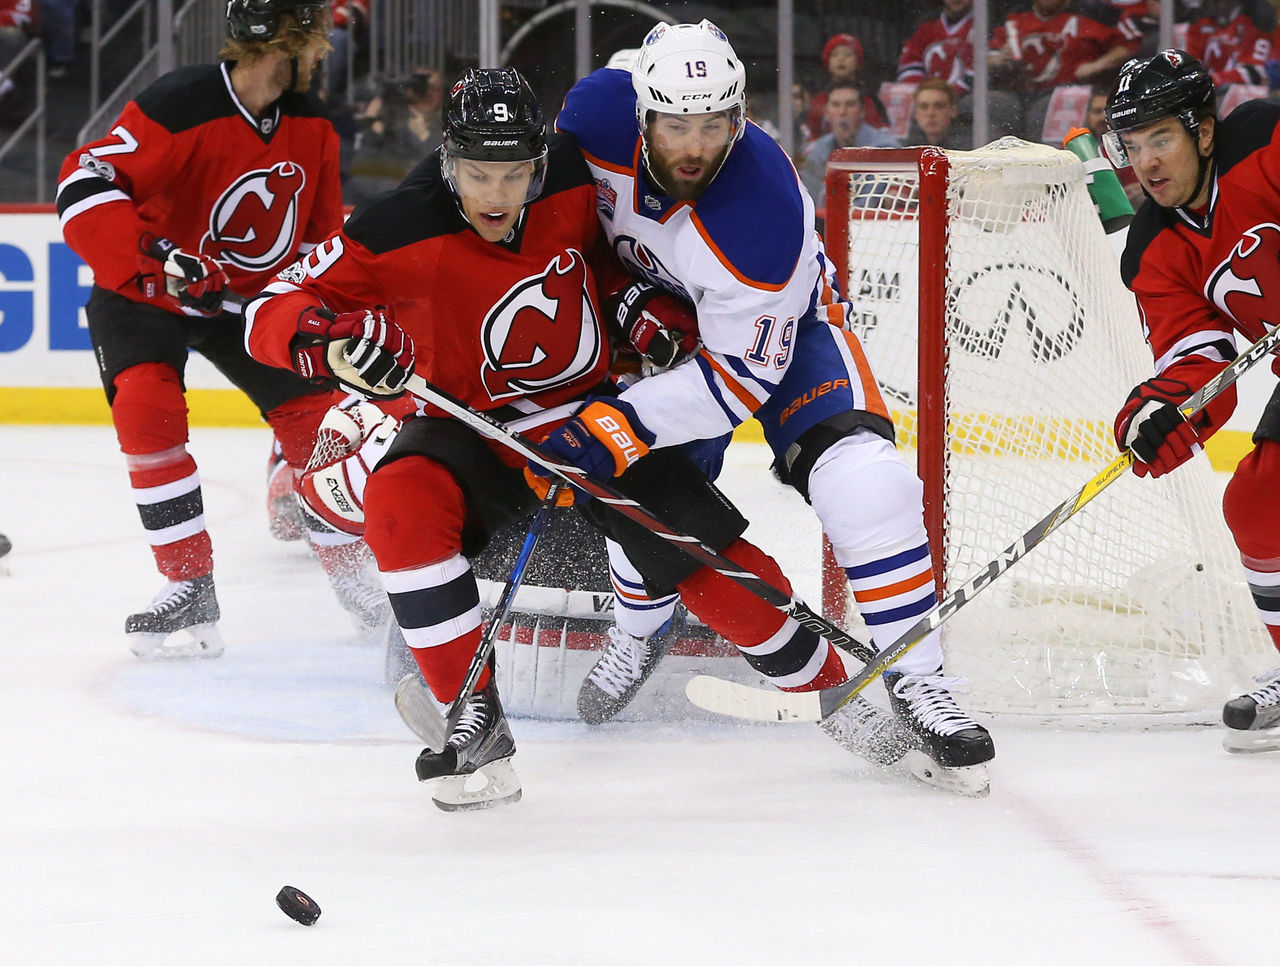 Cropped 2017 01 08t011119z 1036396158 nocid rtrmadp 3 nhl edmonton oilers at new jersey devils